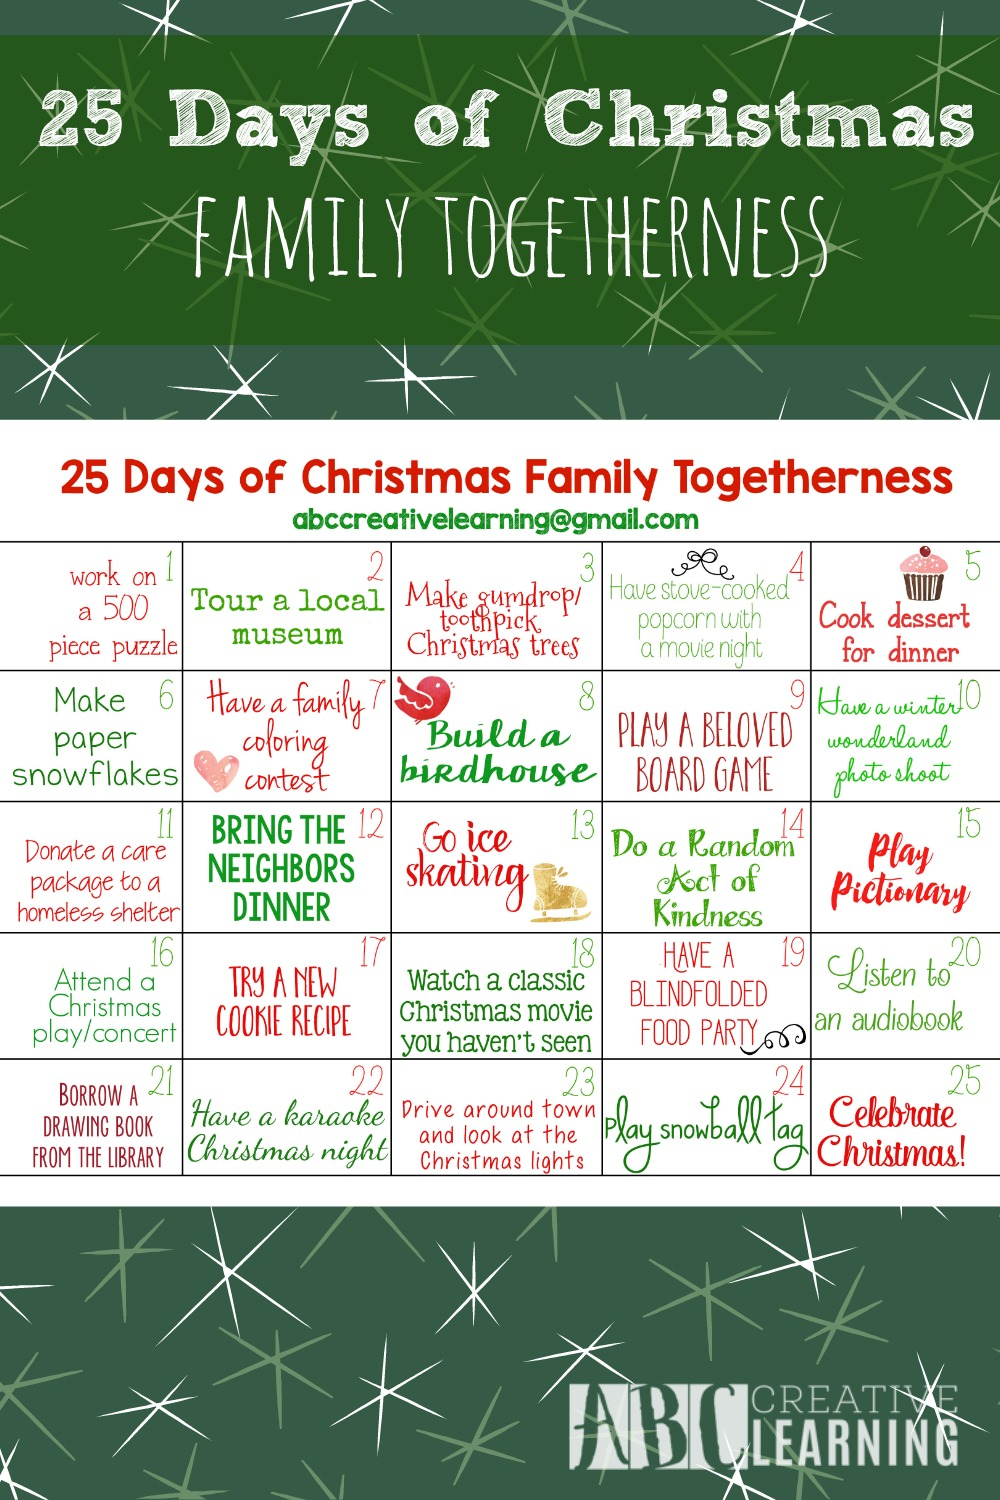 25 Days of Christmas Family Togetherness Calendar Activity 1